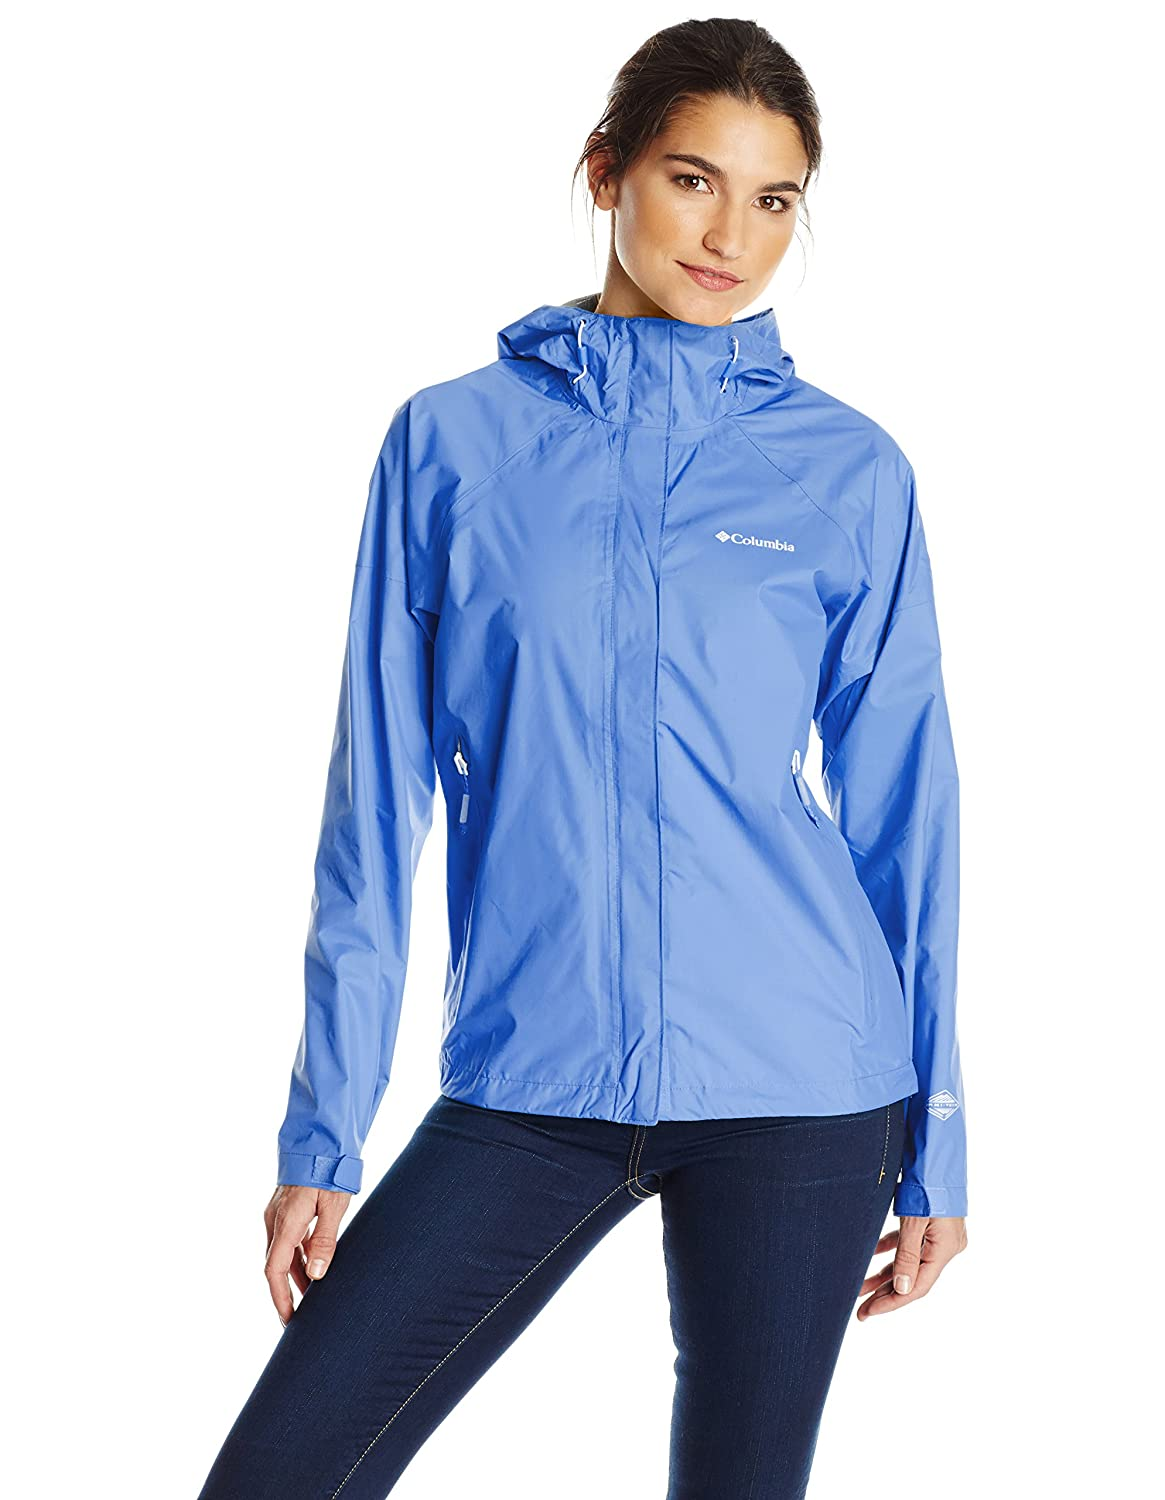 Columbia women's toklat rain jacket